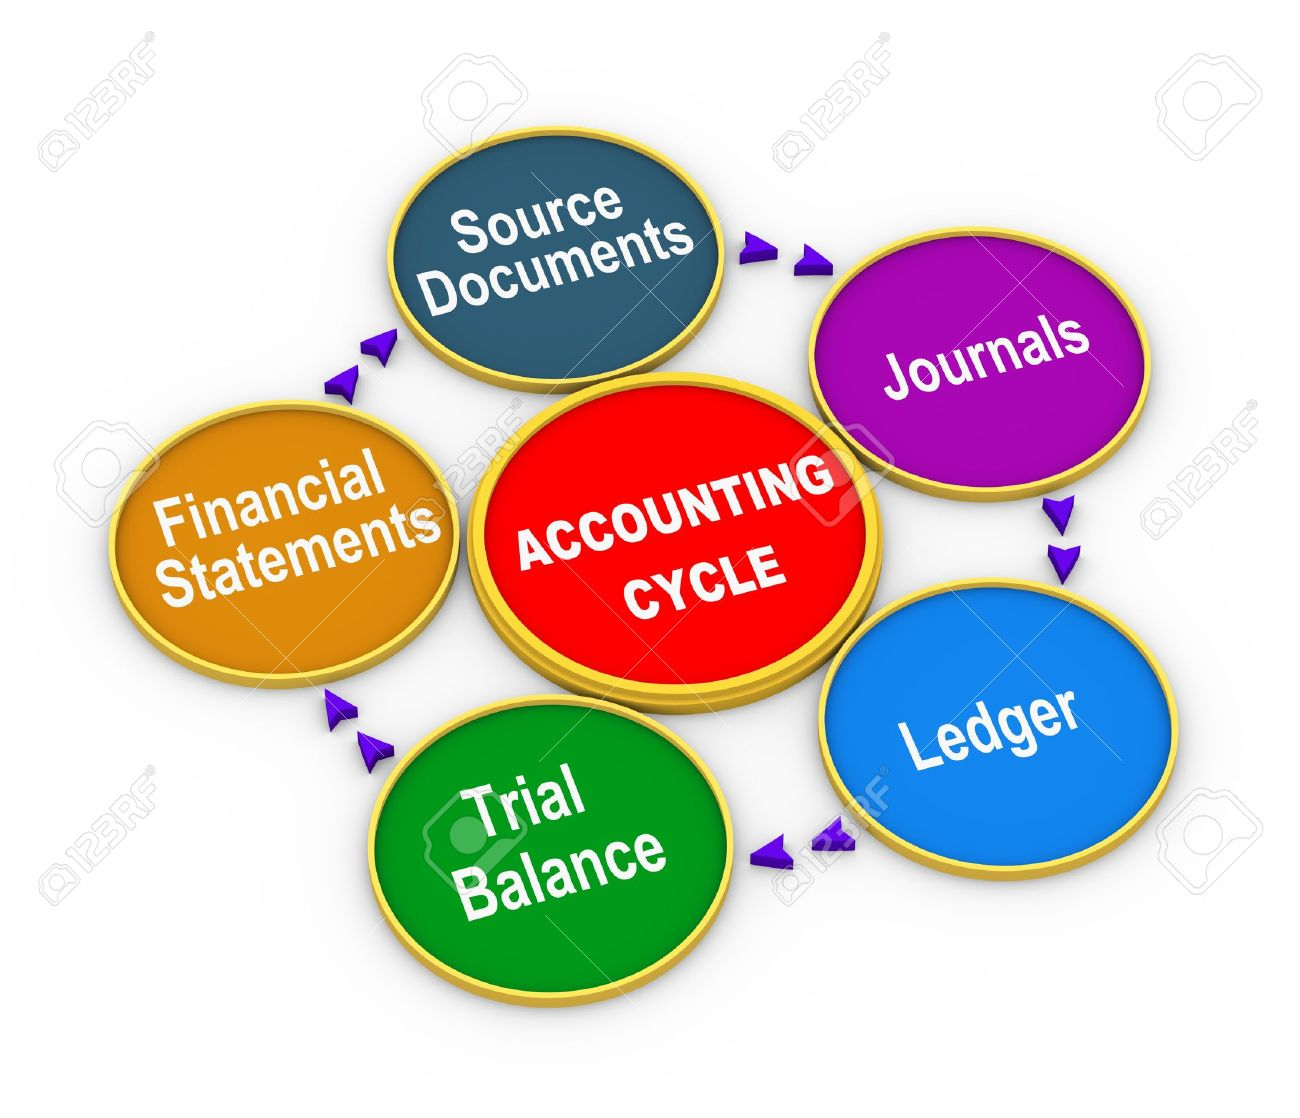 3d illustration of circular flow chart of life cycle of accounting 3d illustration of circular flow chart of life cycle of accounting process stock illustration 21082373 ccuart Gallery